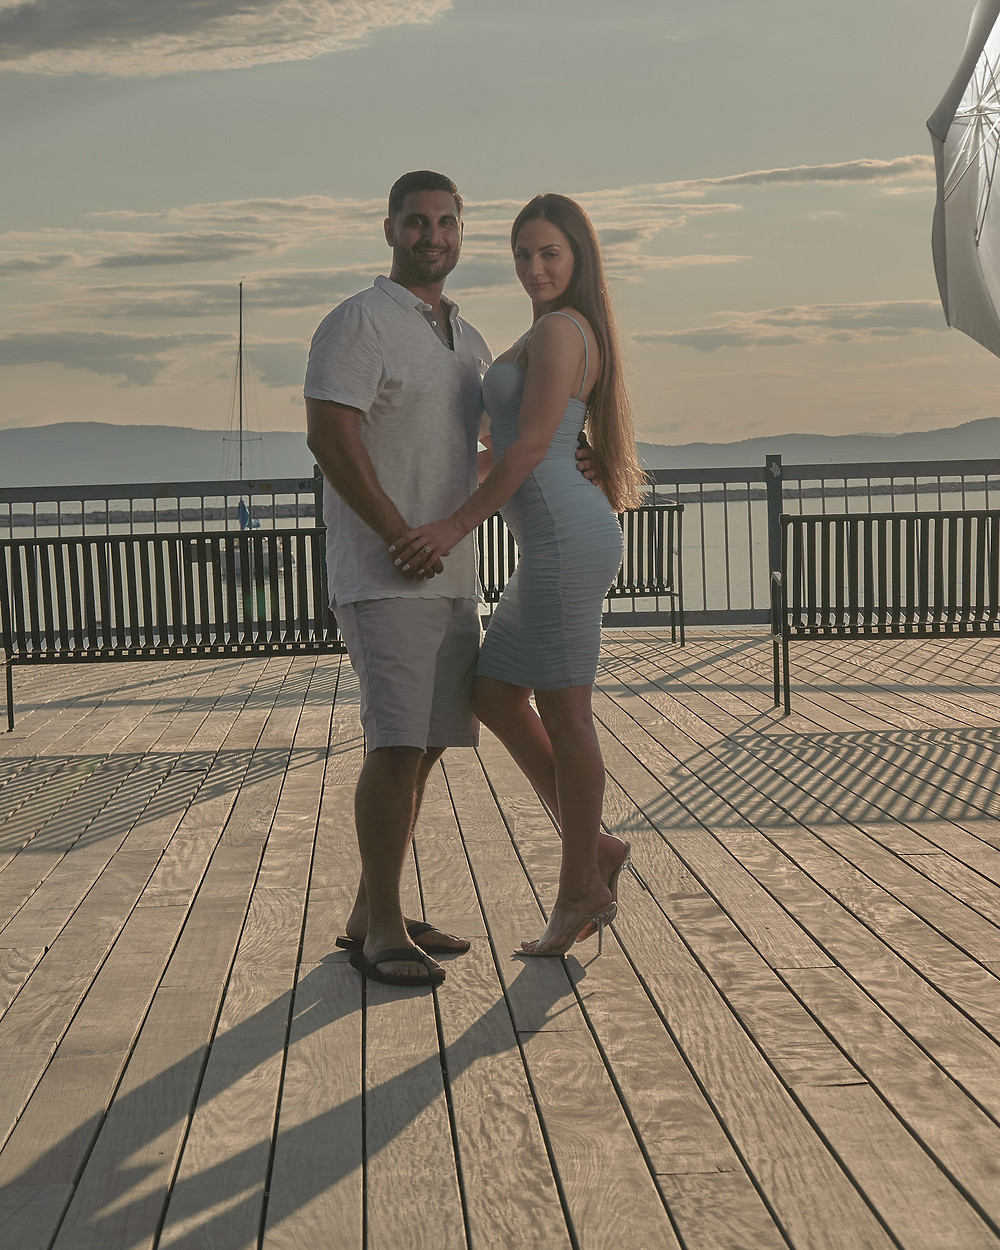 a couple poses on a pier. In the upper right hand corner you can see a flash umbrella lit helping expose the image properly.